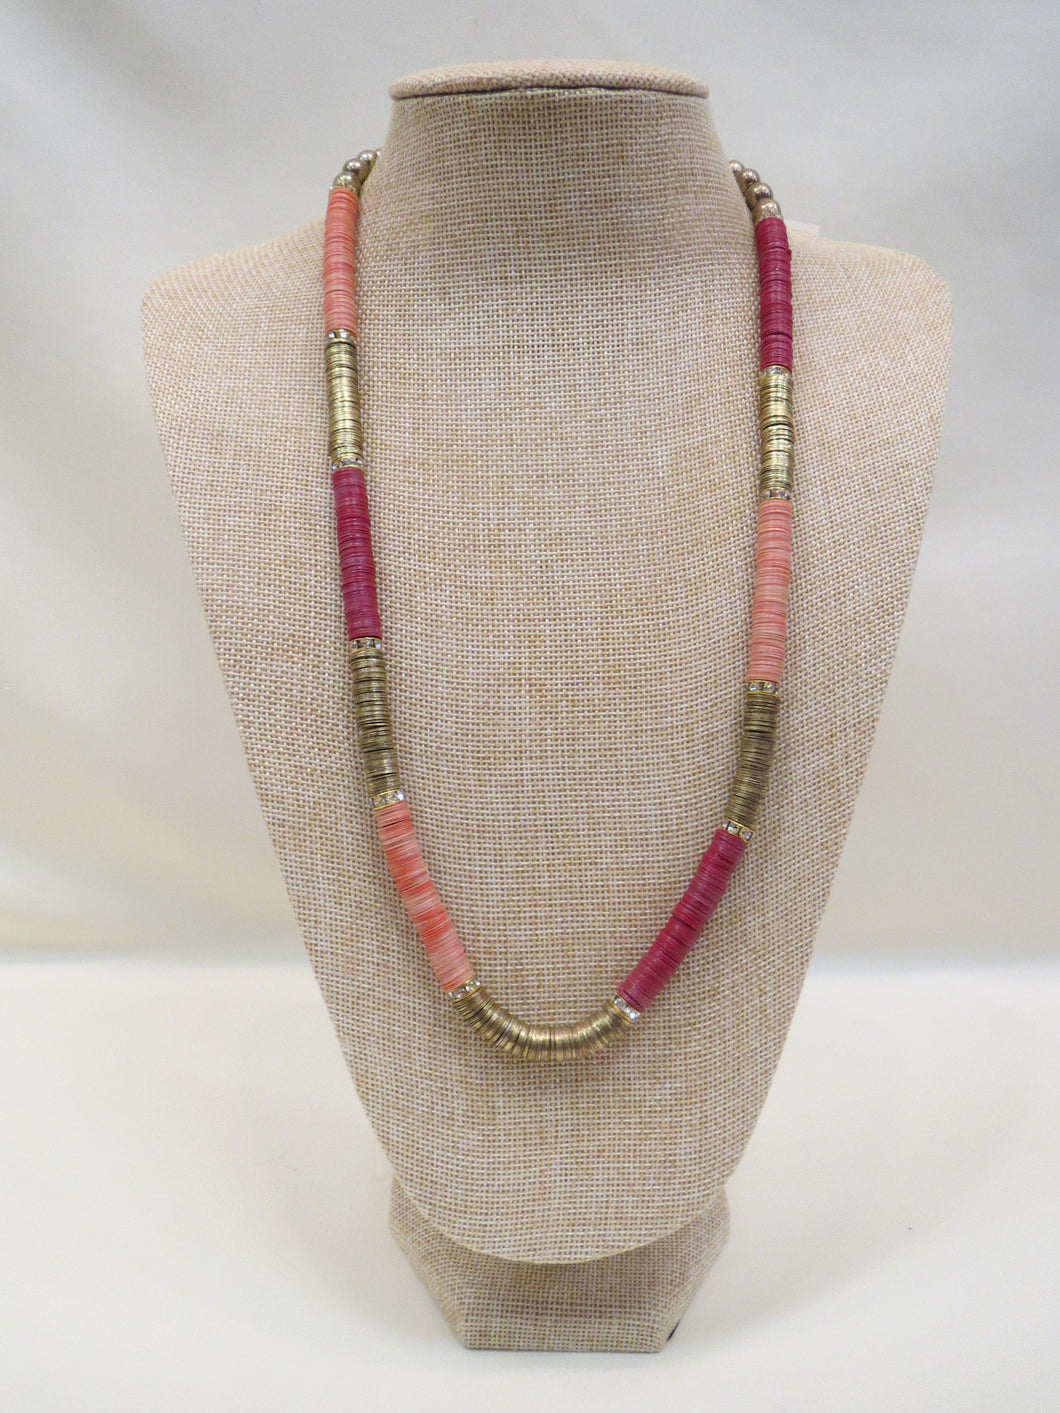 ADO Pink Gold & Magenta Bead Necklace | All Dec'd Out